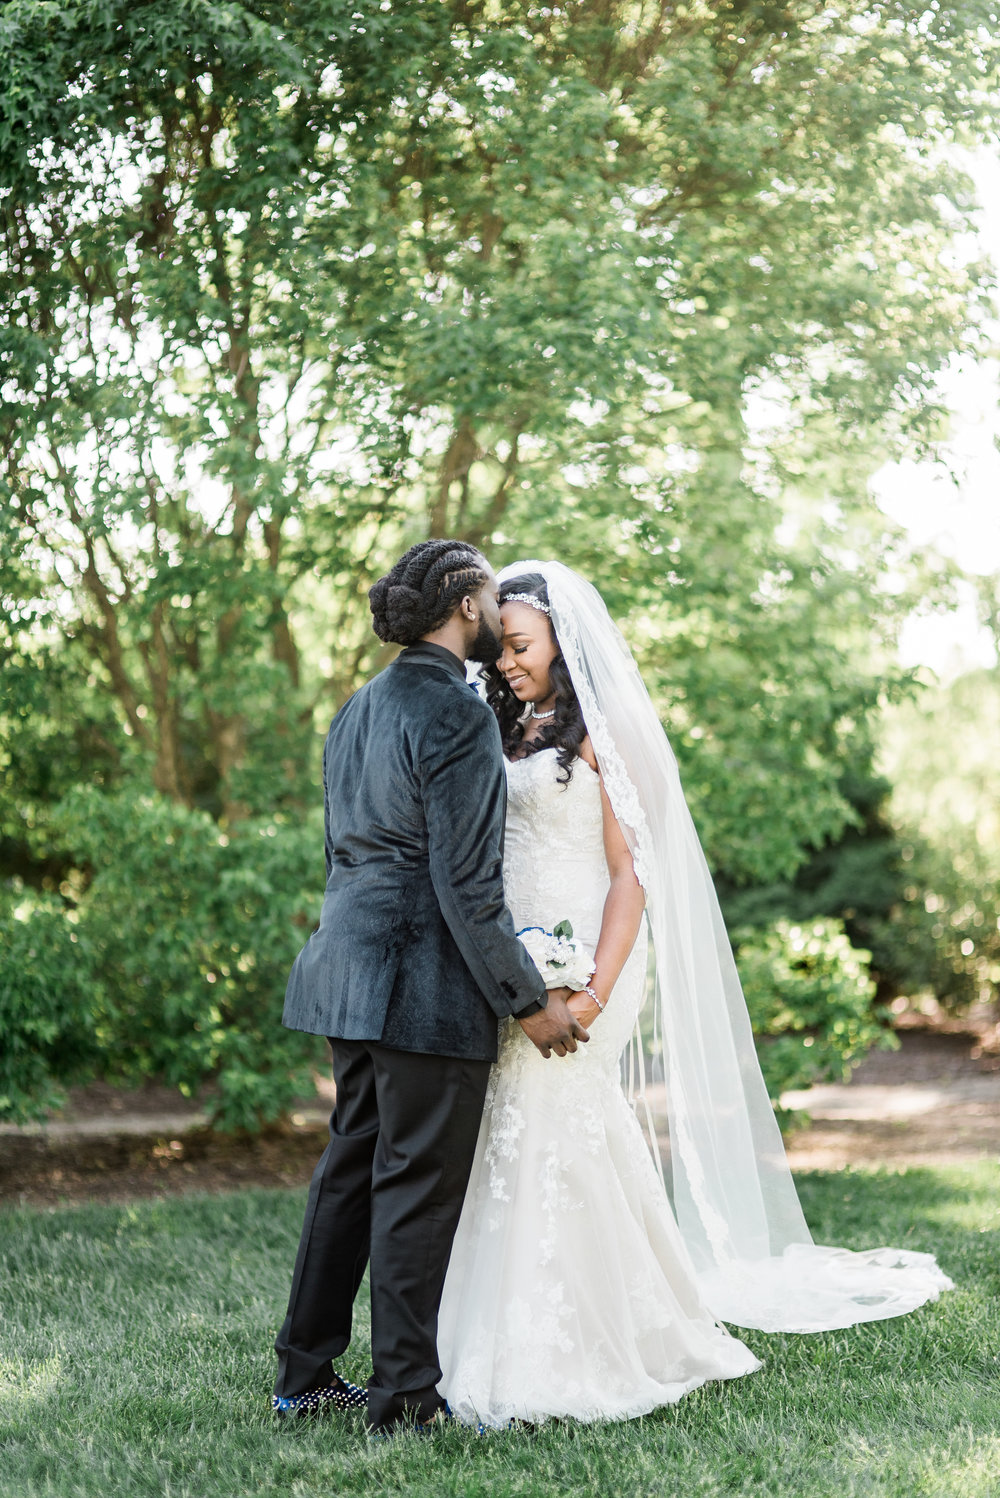 ashley-and-bryon-cincinnati-wedding-photographer-the-knot-feature-14